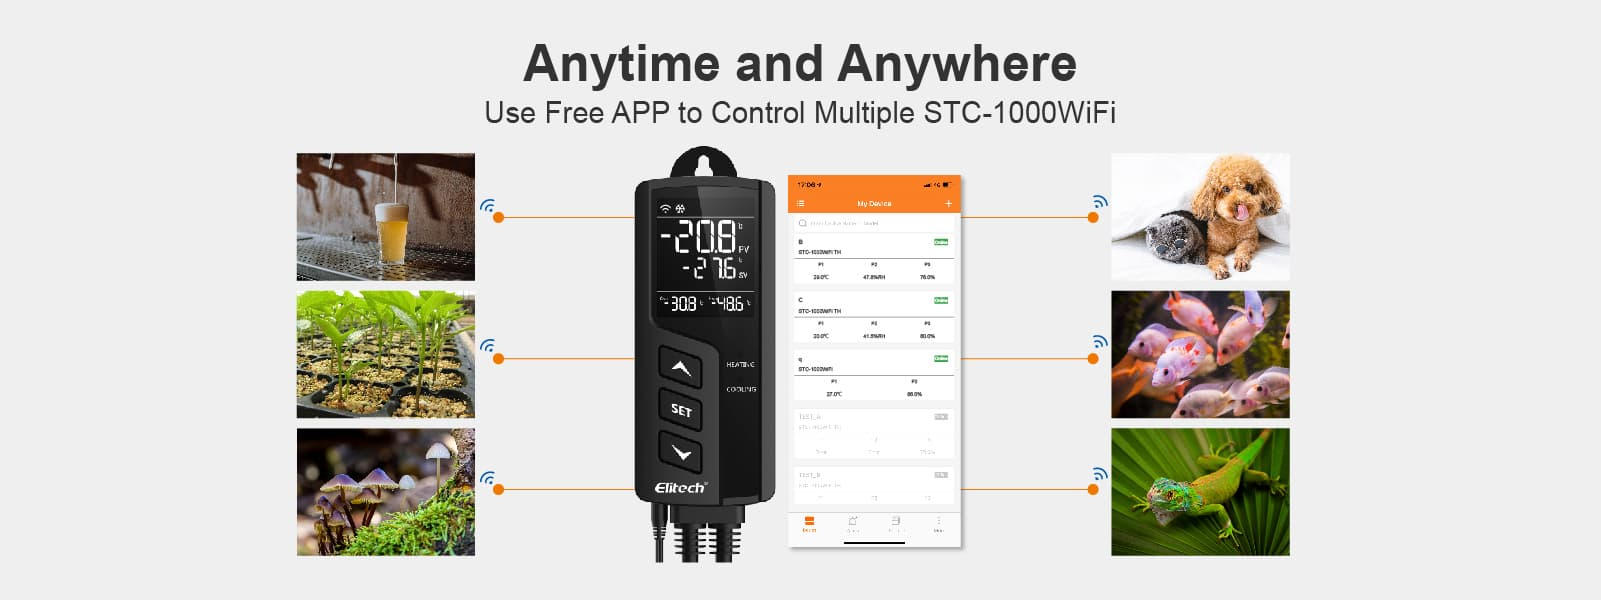 Elitech STC-1000WiFi Thermostat Use Free APP to Control Multiple Devices - Elitech UK